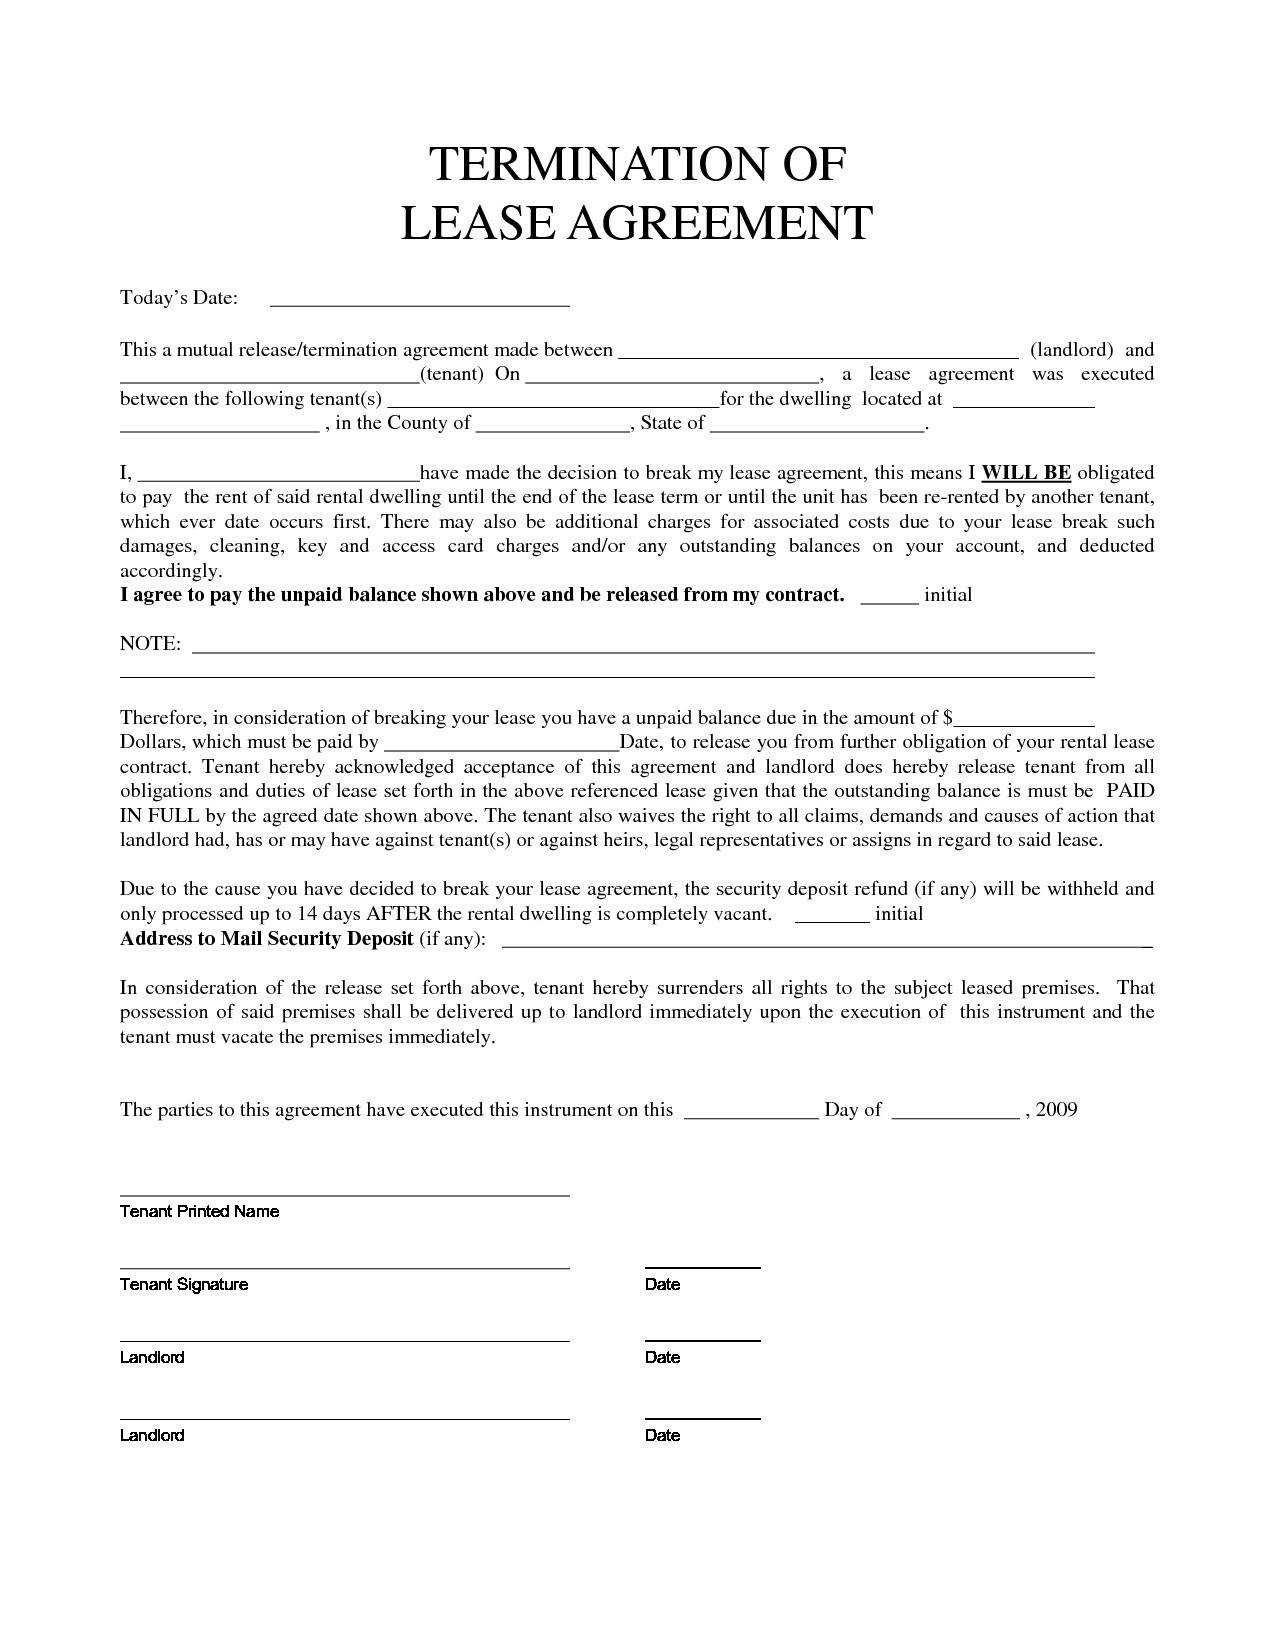 Termination Of Lease Agreement Examples